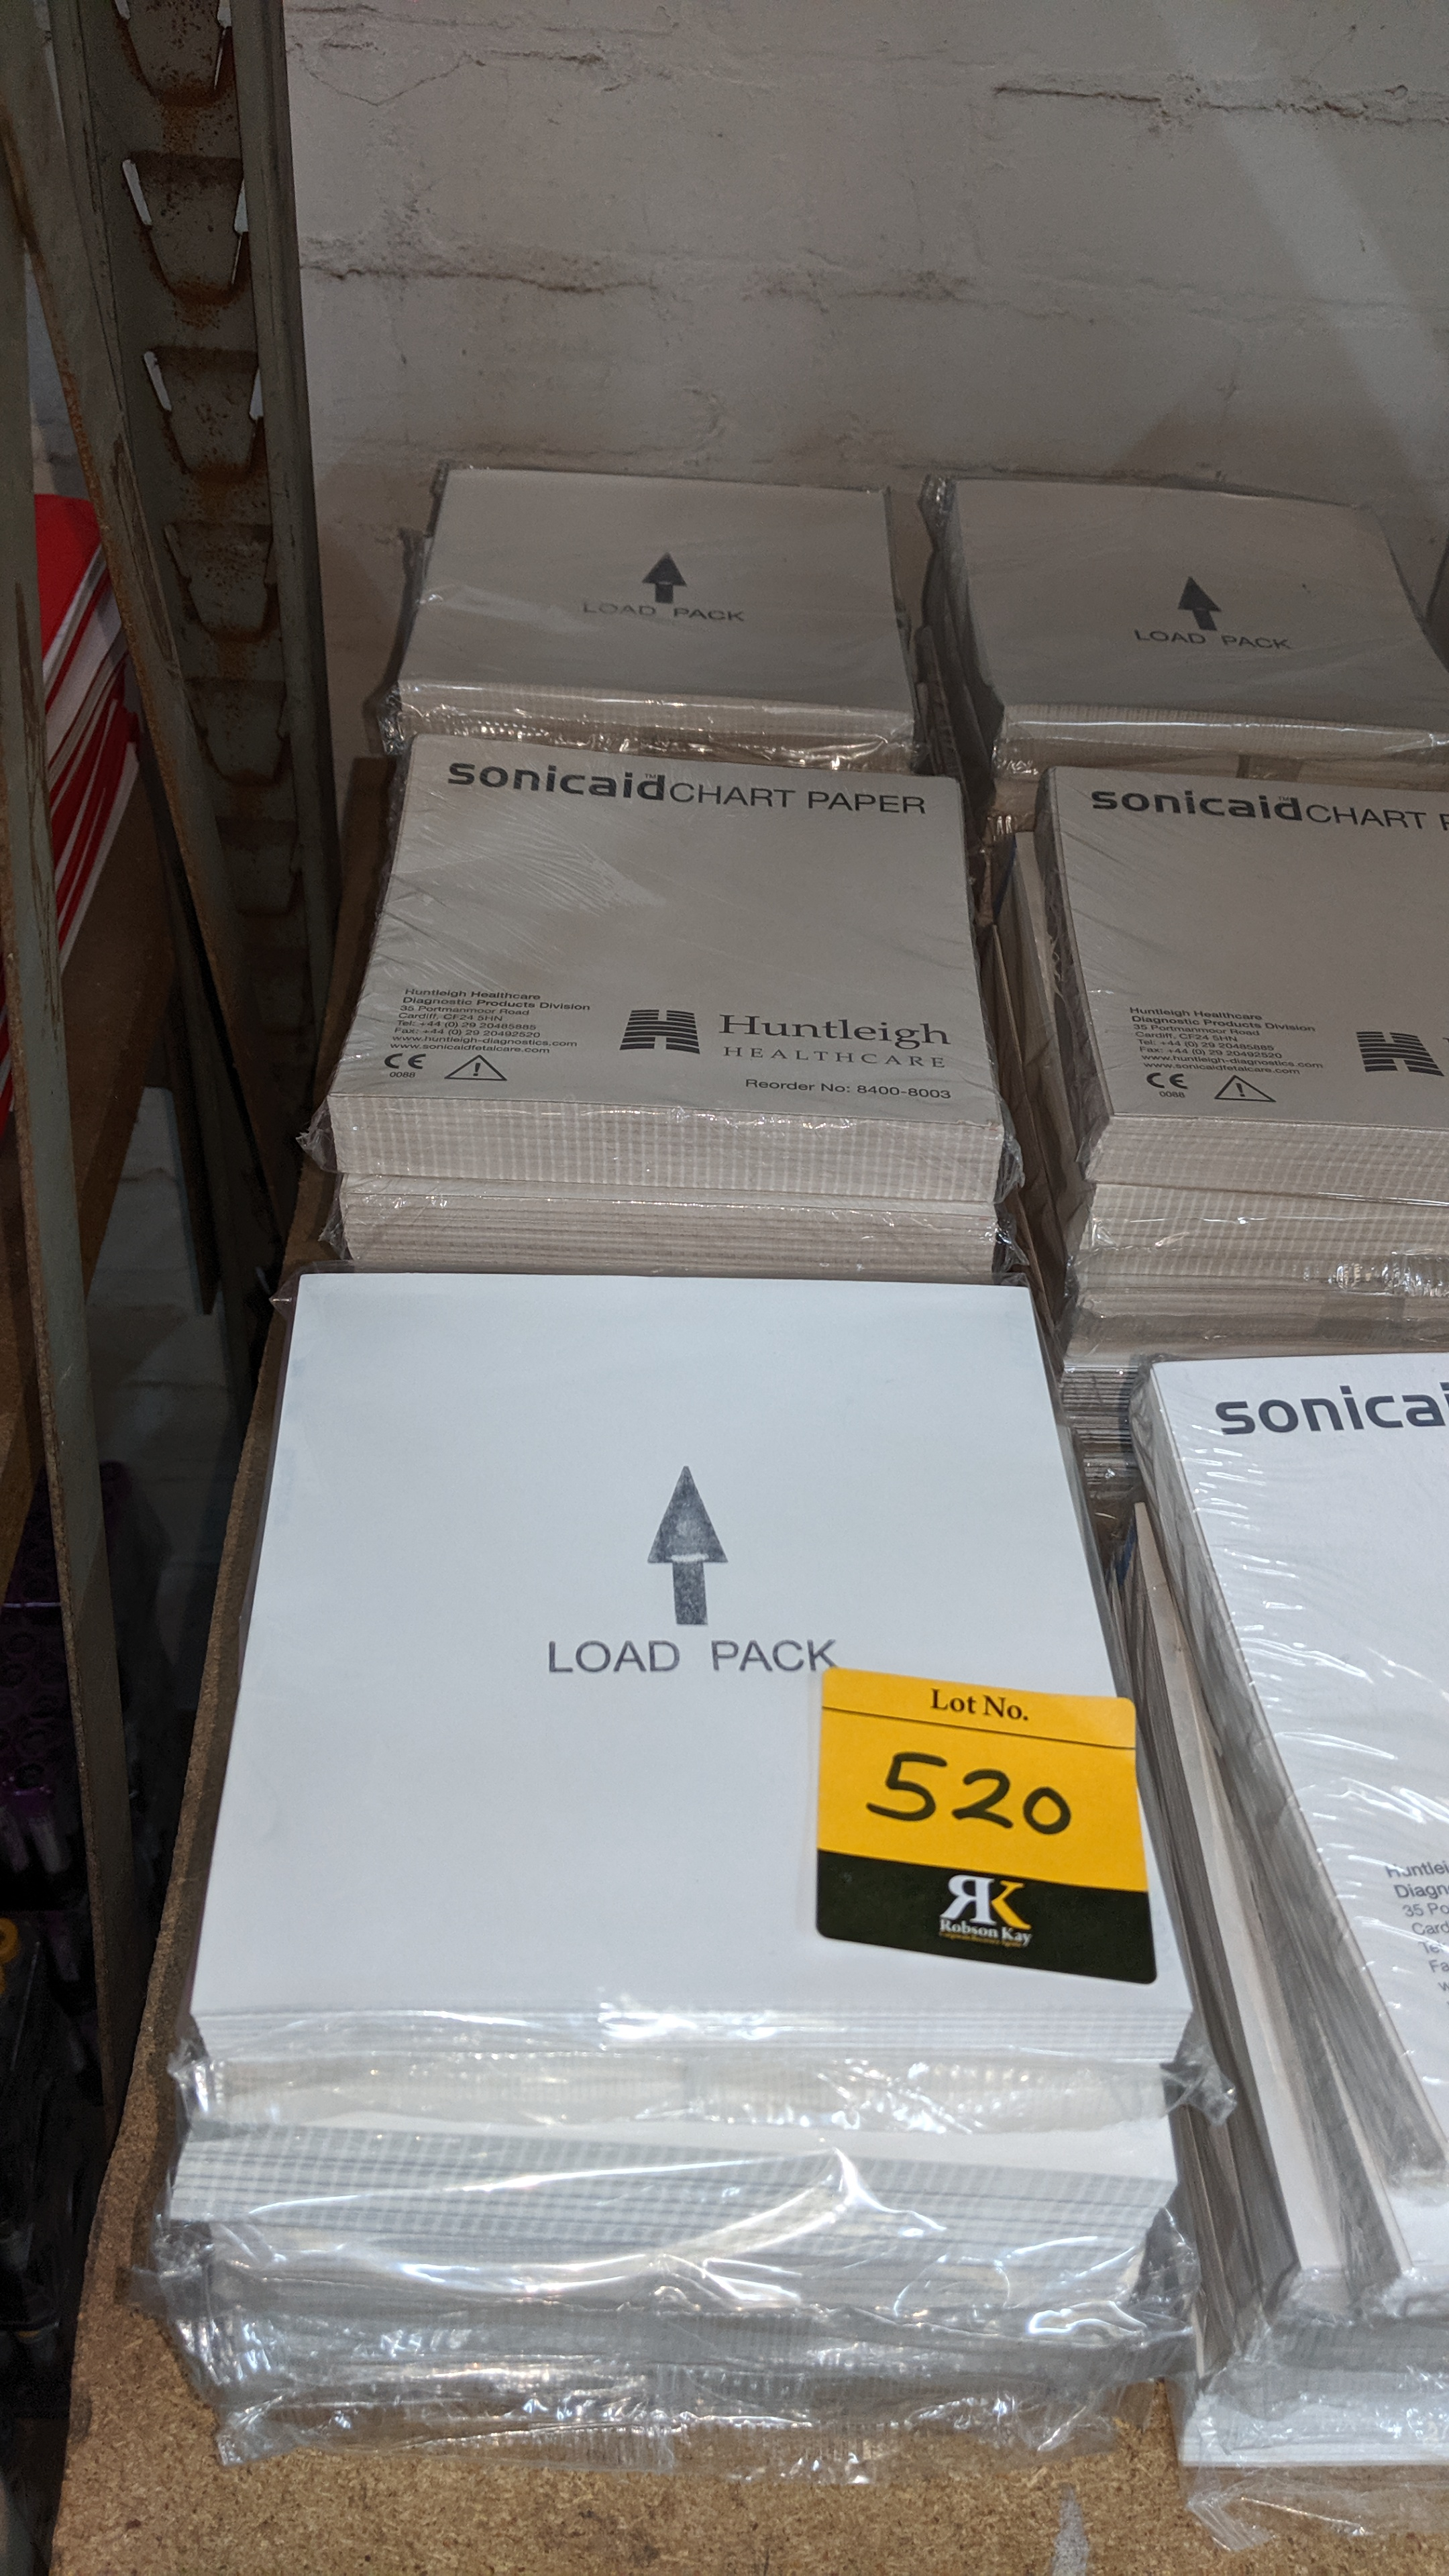 Lot 520 - Row of Sonicaid chart paper. This is one of a large number of lots used/owned by One To One (North